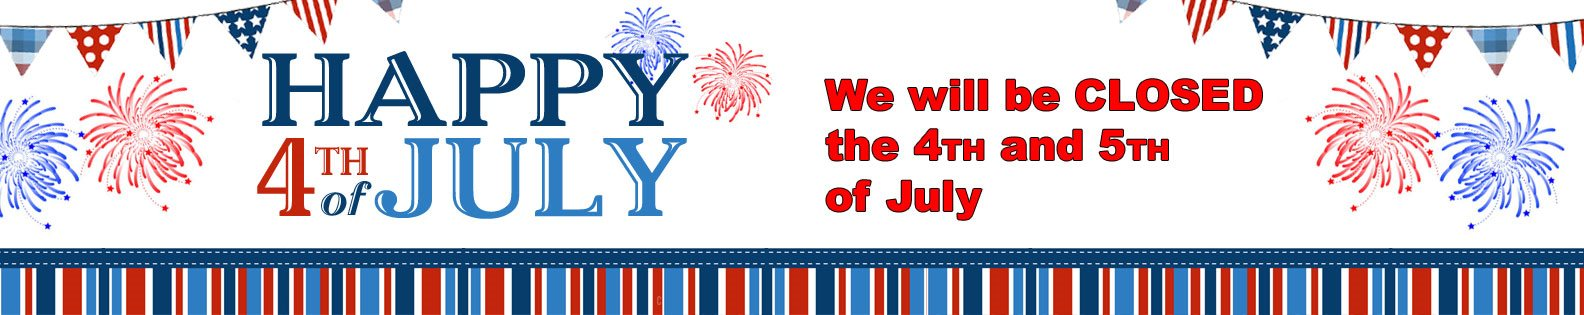 4th-of-july-banner